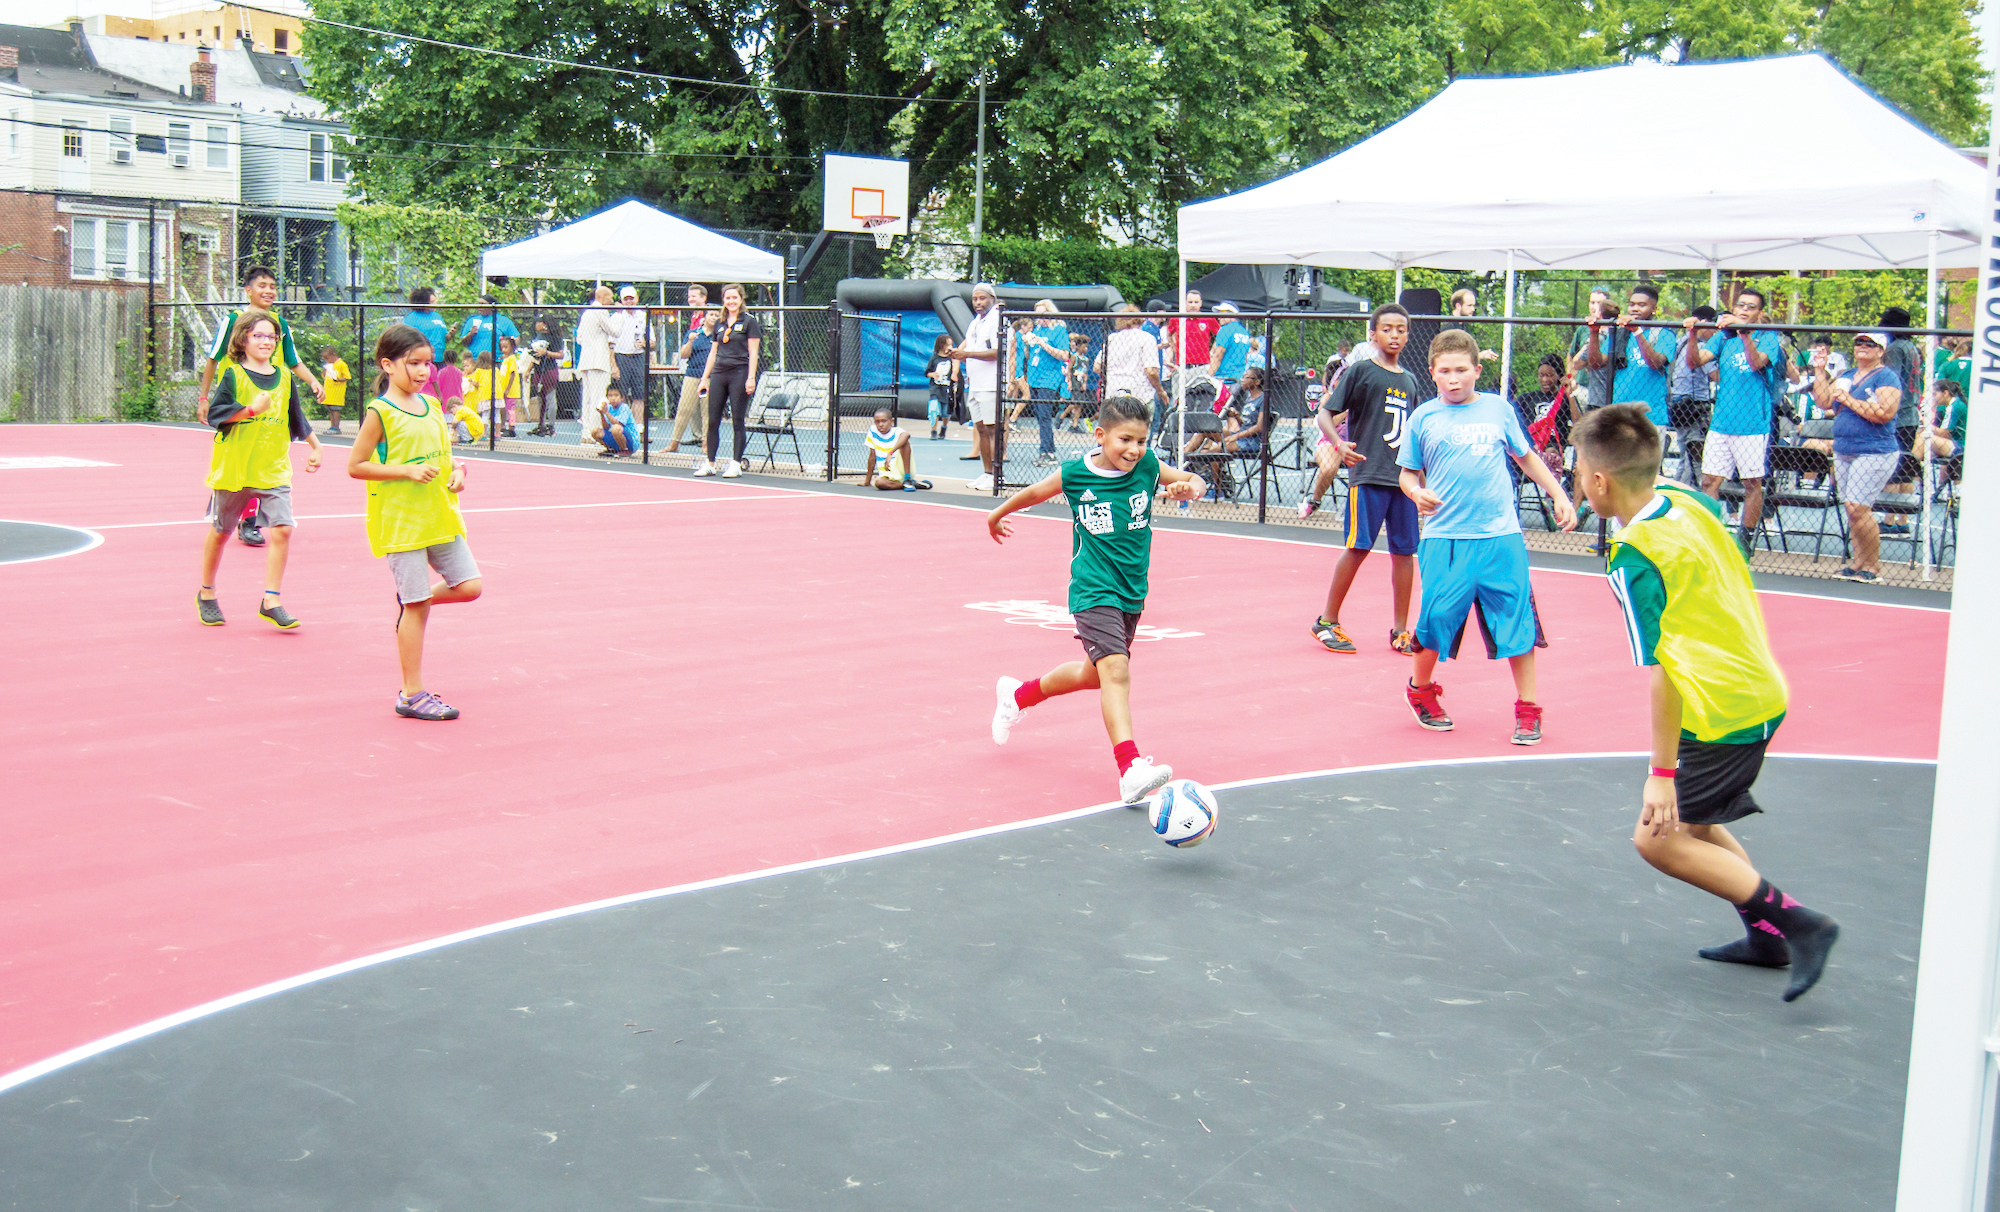 Inauguran mini campo de fútbol en Petworth